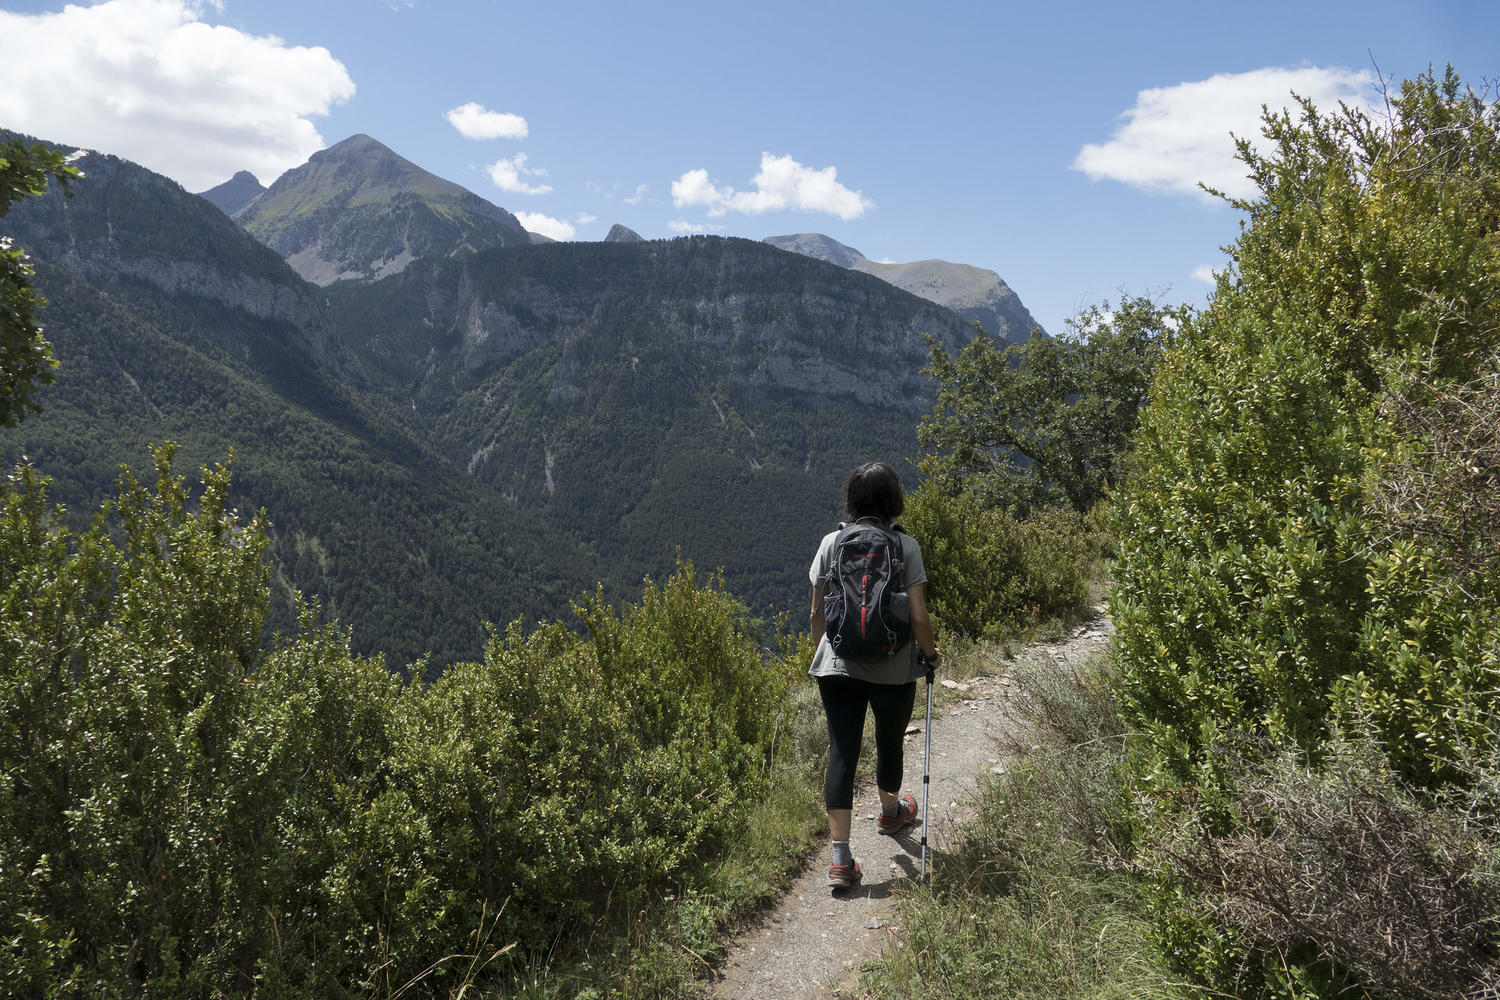 Walking from village to village in the Gistain valley